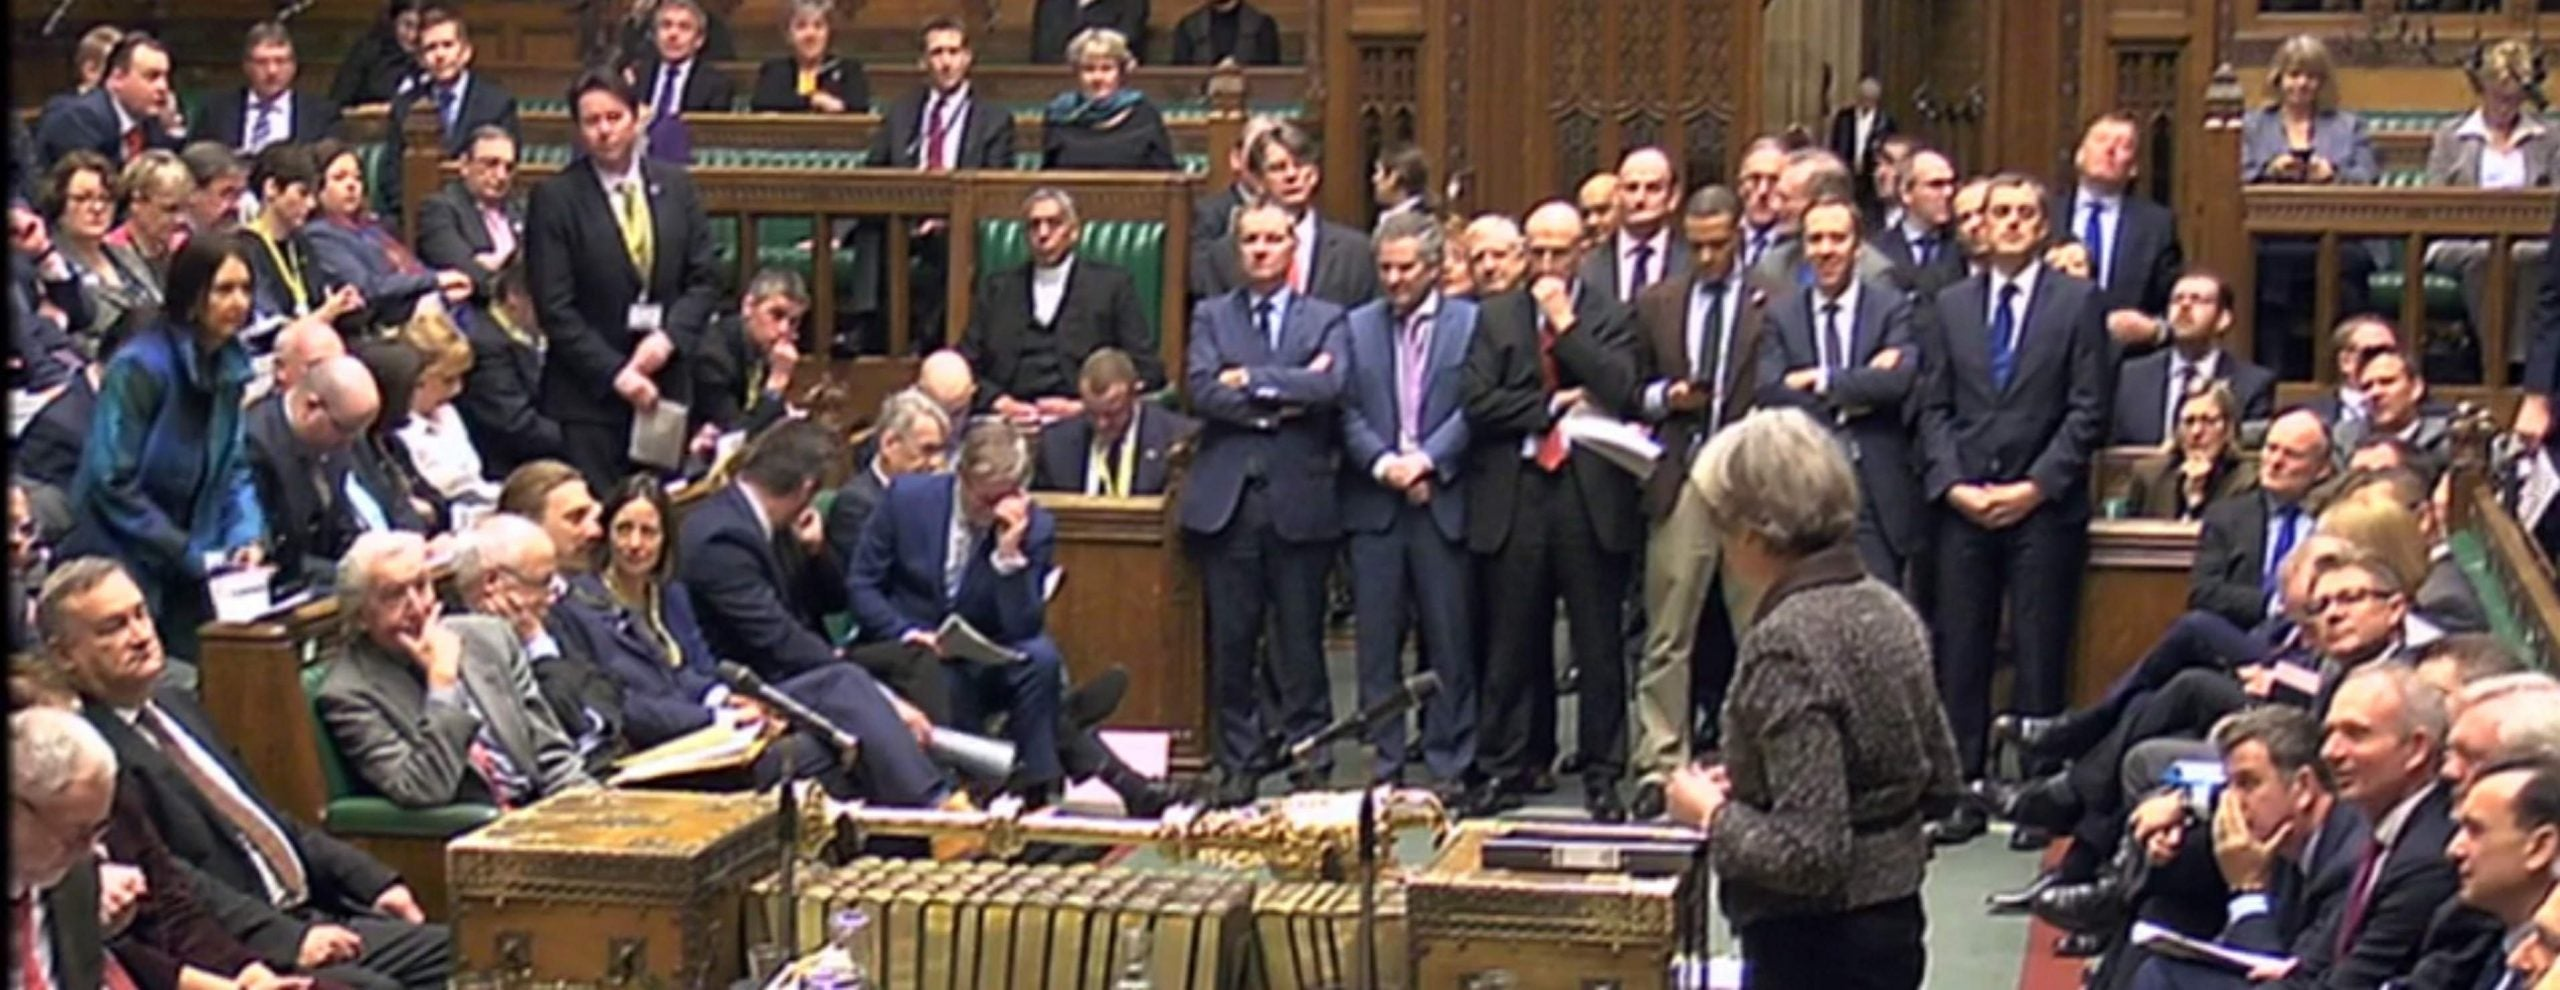 Face it, PMQs is better viewing than committees where the narcoleptic fear to tread